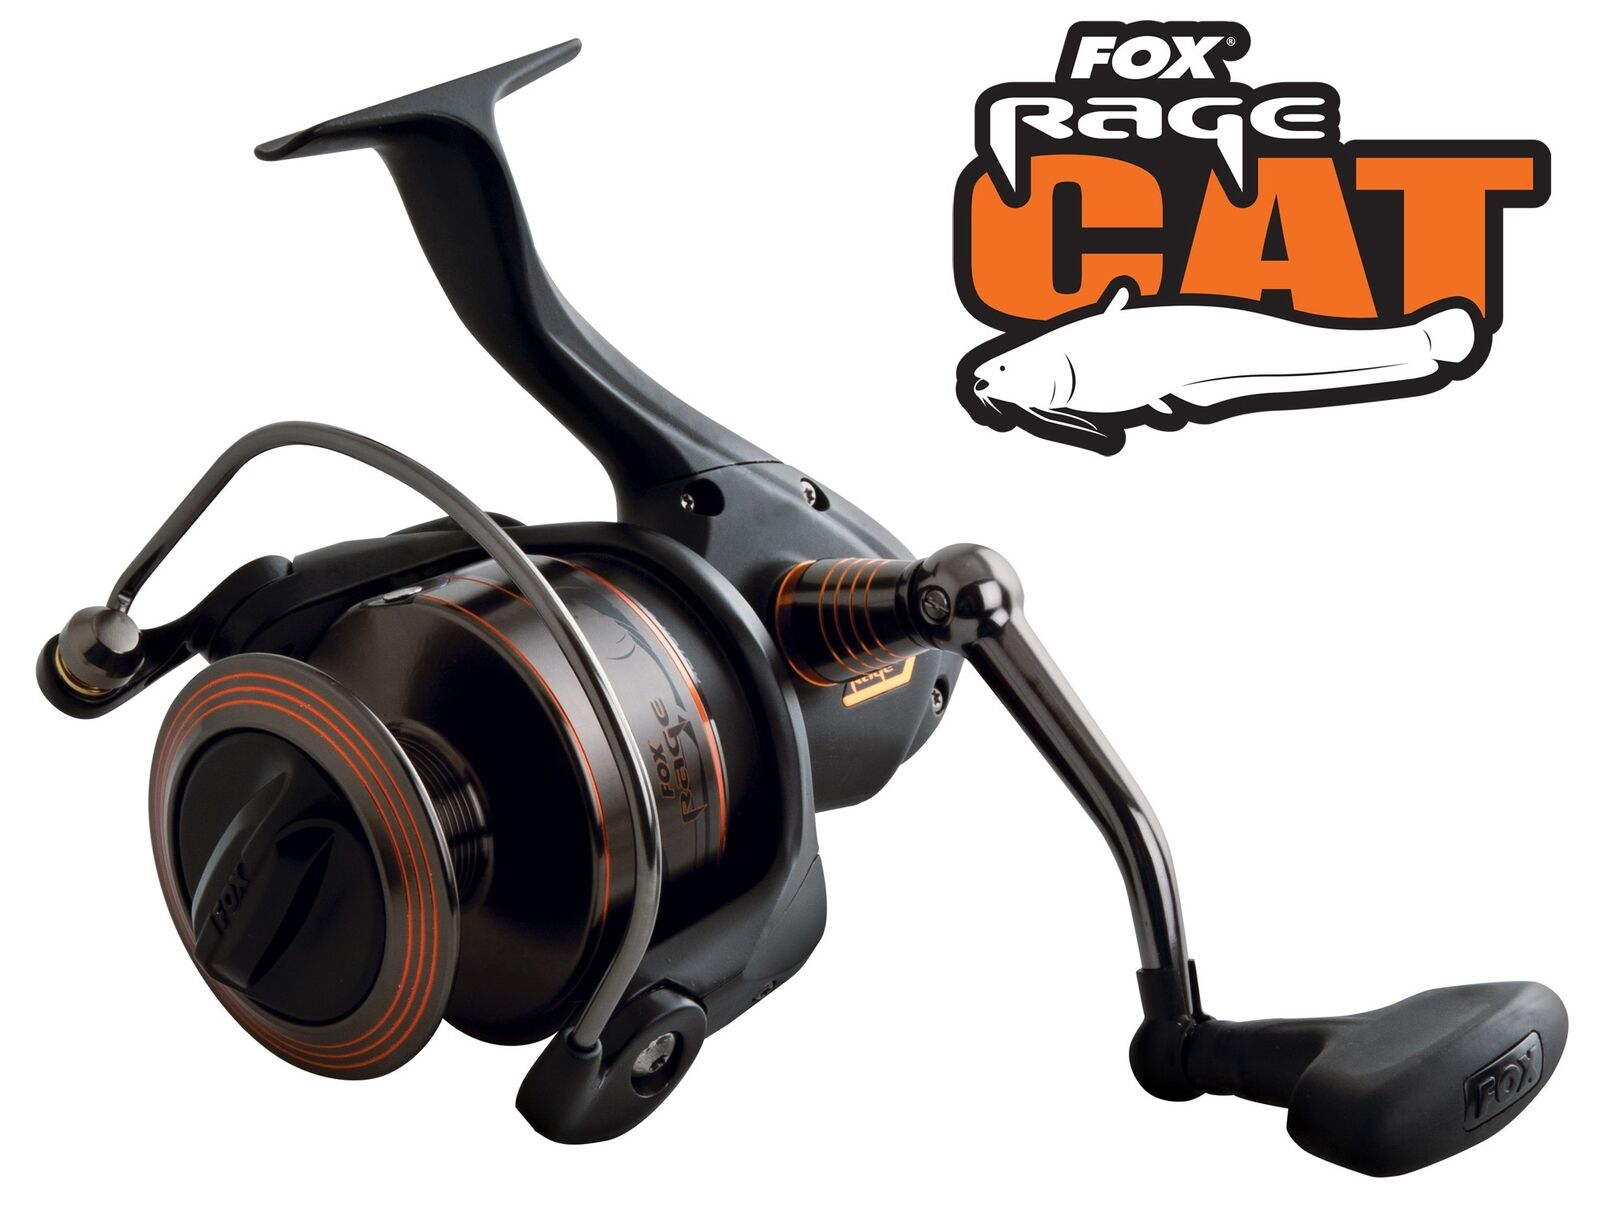 Fox Rage Cat Rolle CR800 Reel - Wallerrolle, Stationärrolle zum Welsangeln